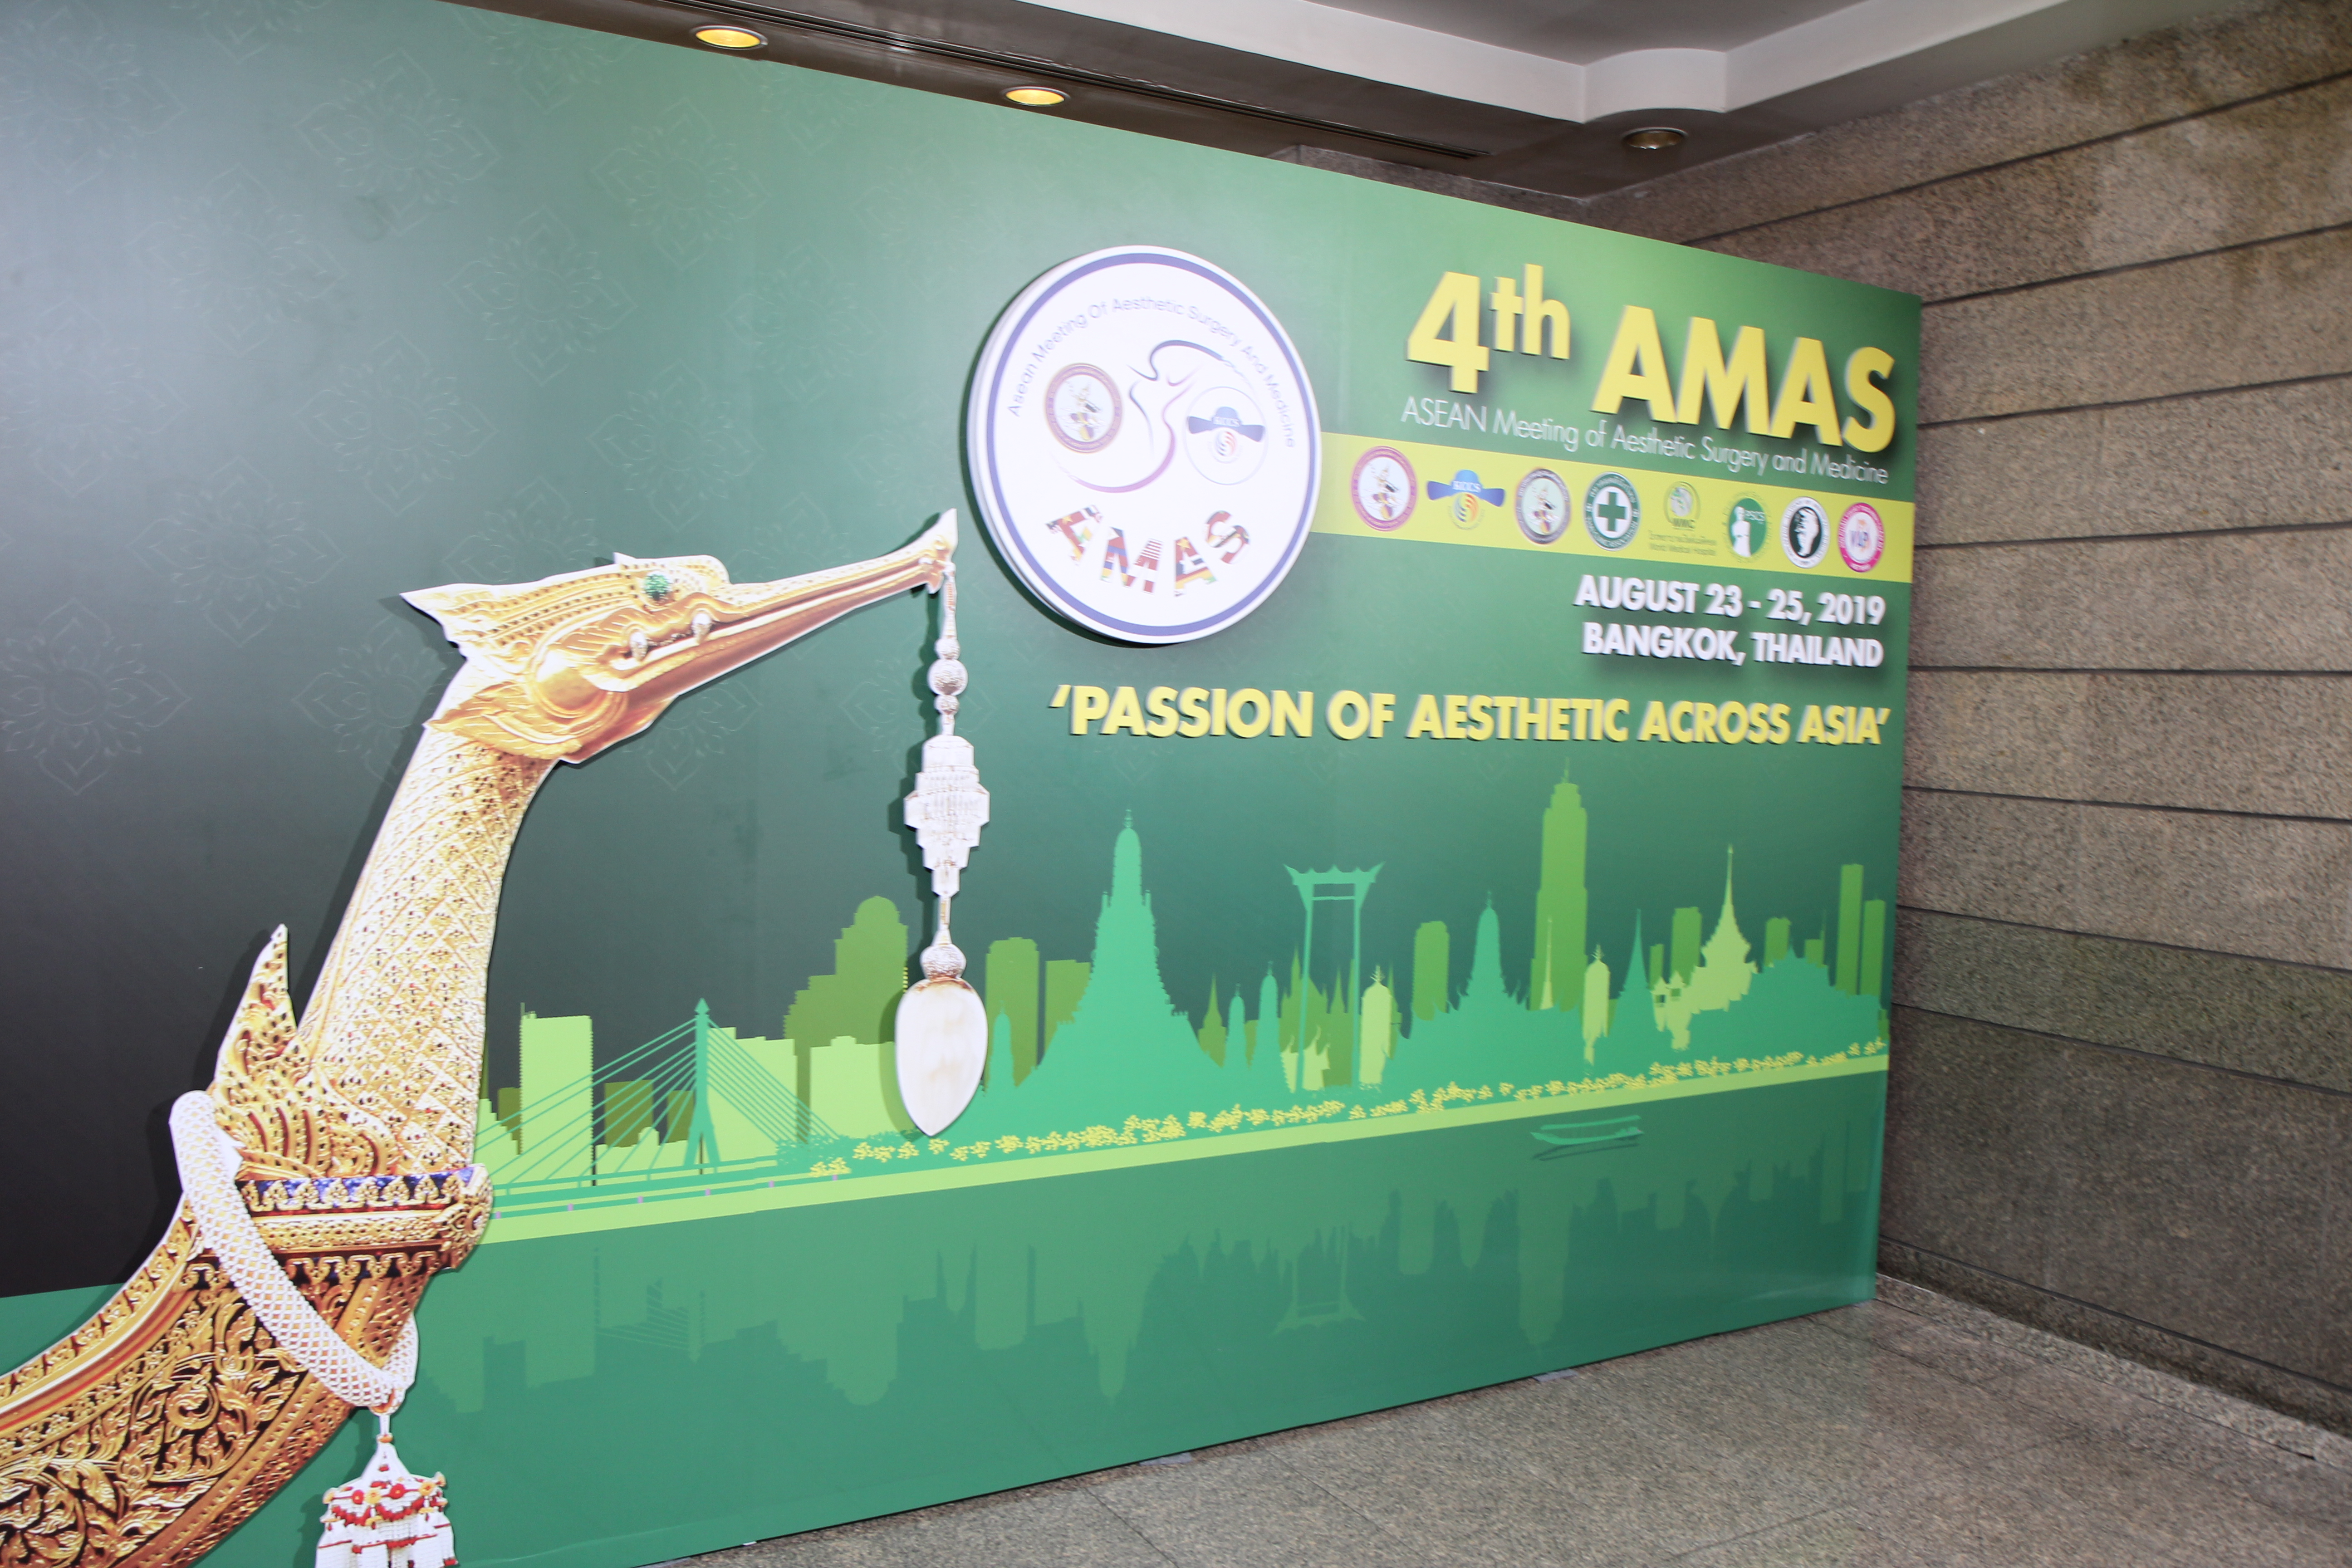 4th ASEAN Meeting of Aesthetic Surgery and Medicine 2019 (AMAS 2019)